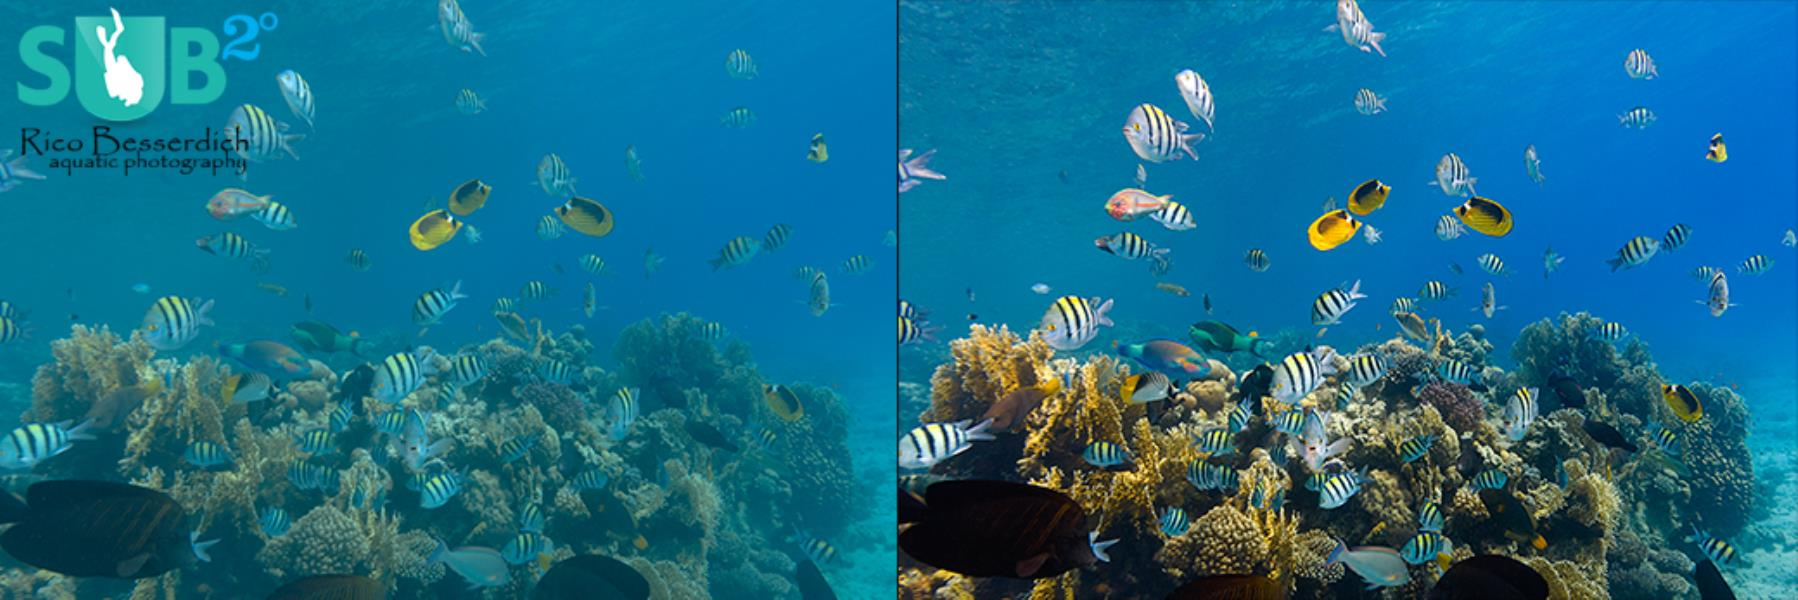 Post Production of Underwater Images: Contrast Improvements